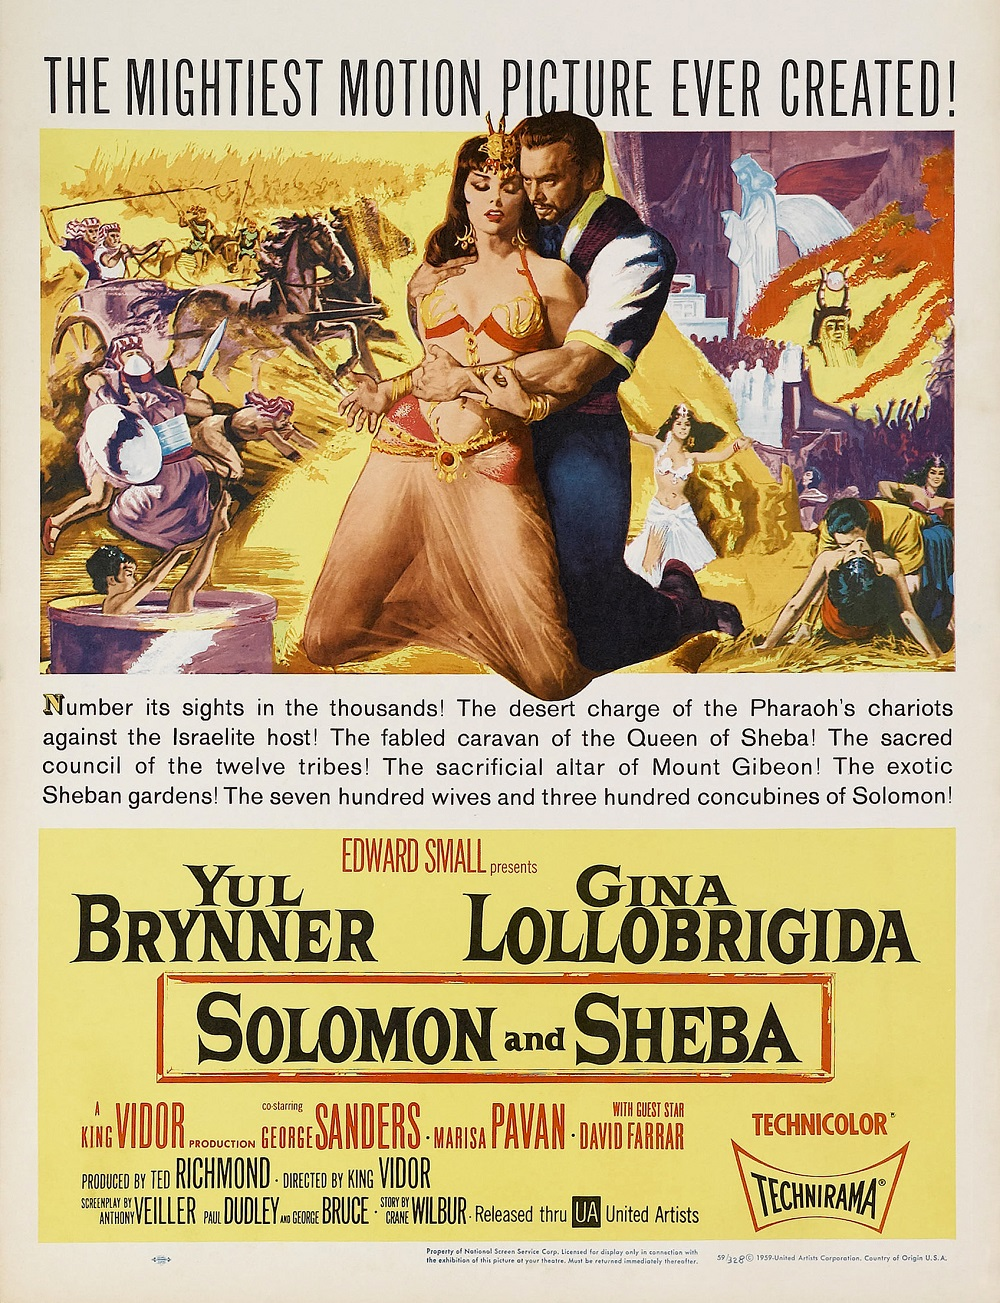 Poster ad for the 1959 film, Solomon and Sheba | Starring Yul Brynner and Gina Lollobrigida, directed by King Vidor |  Image Source